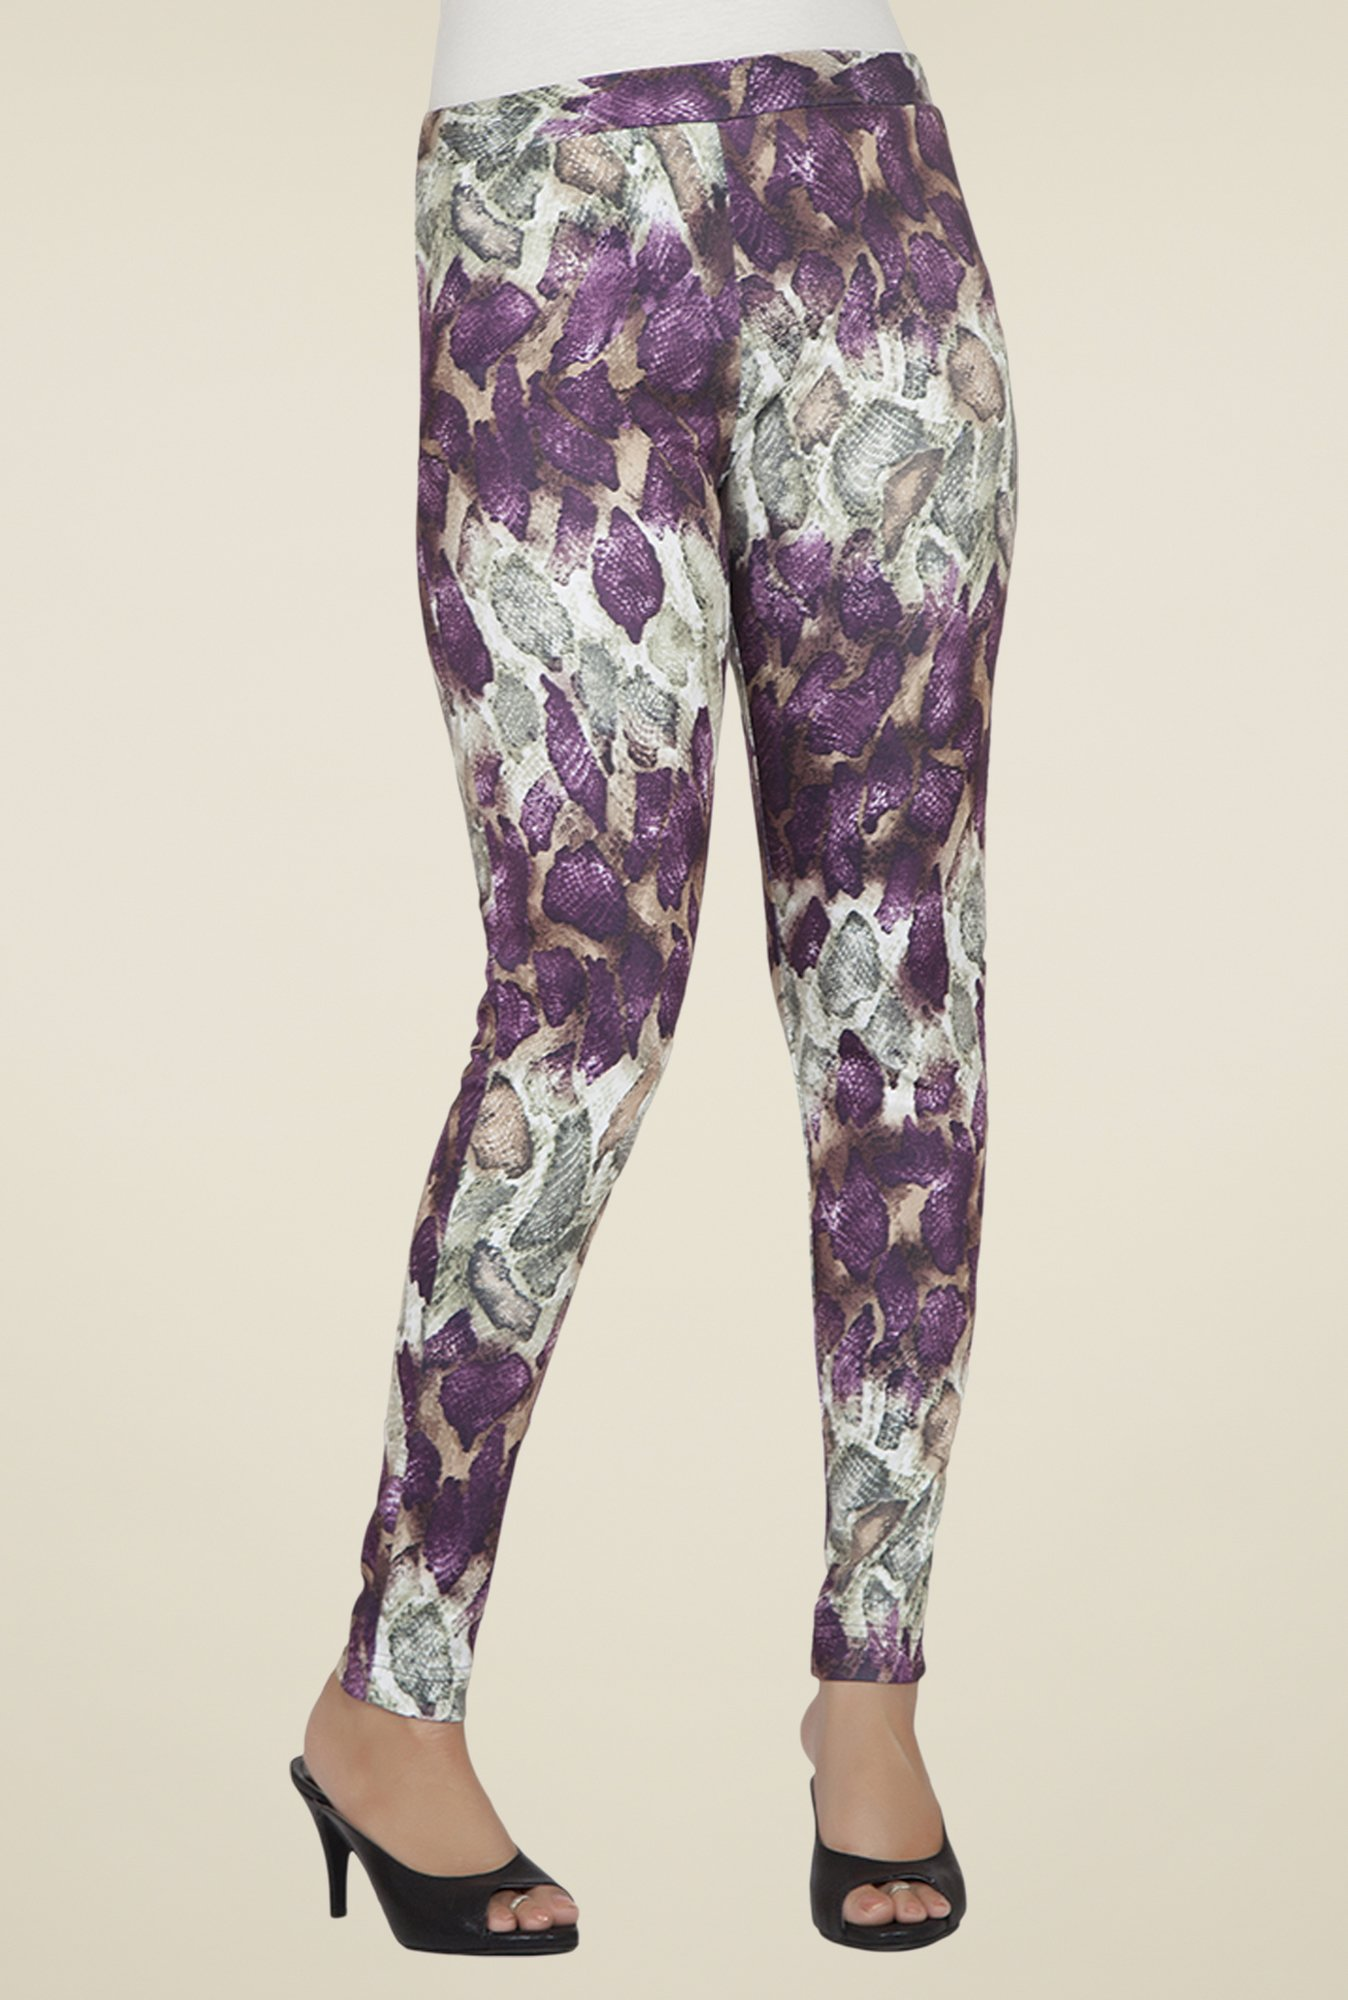 Desi Belle Multicolor Printed Jeggings